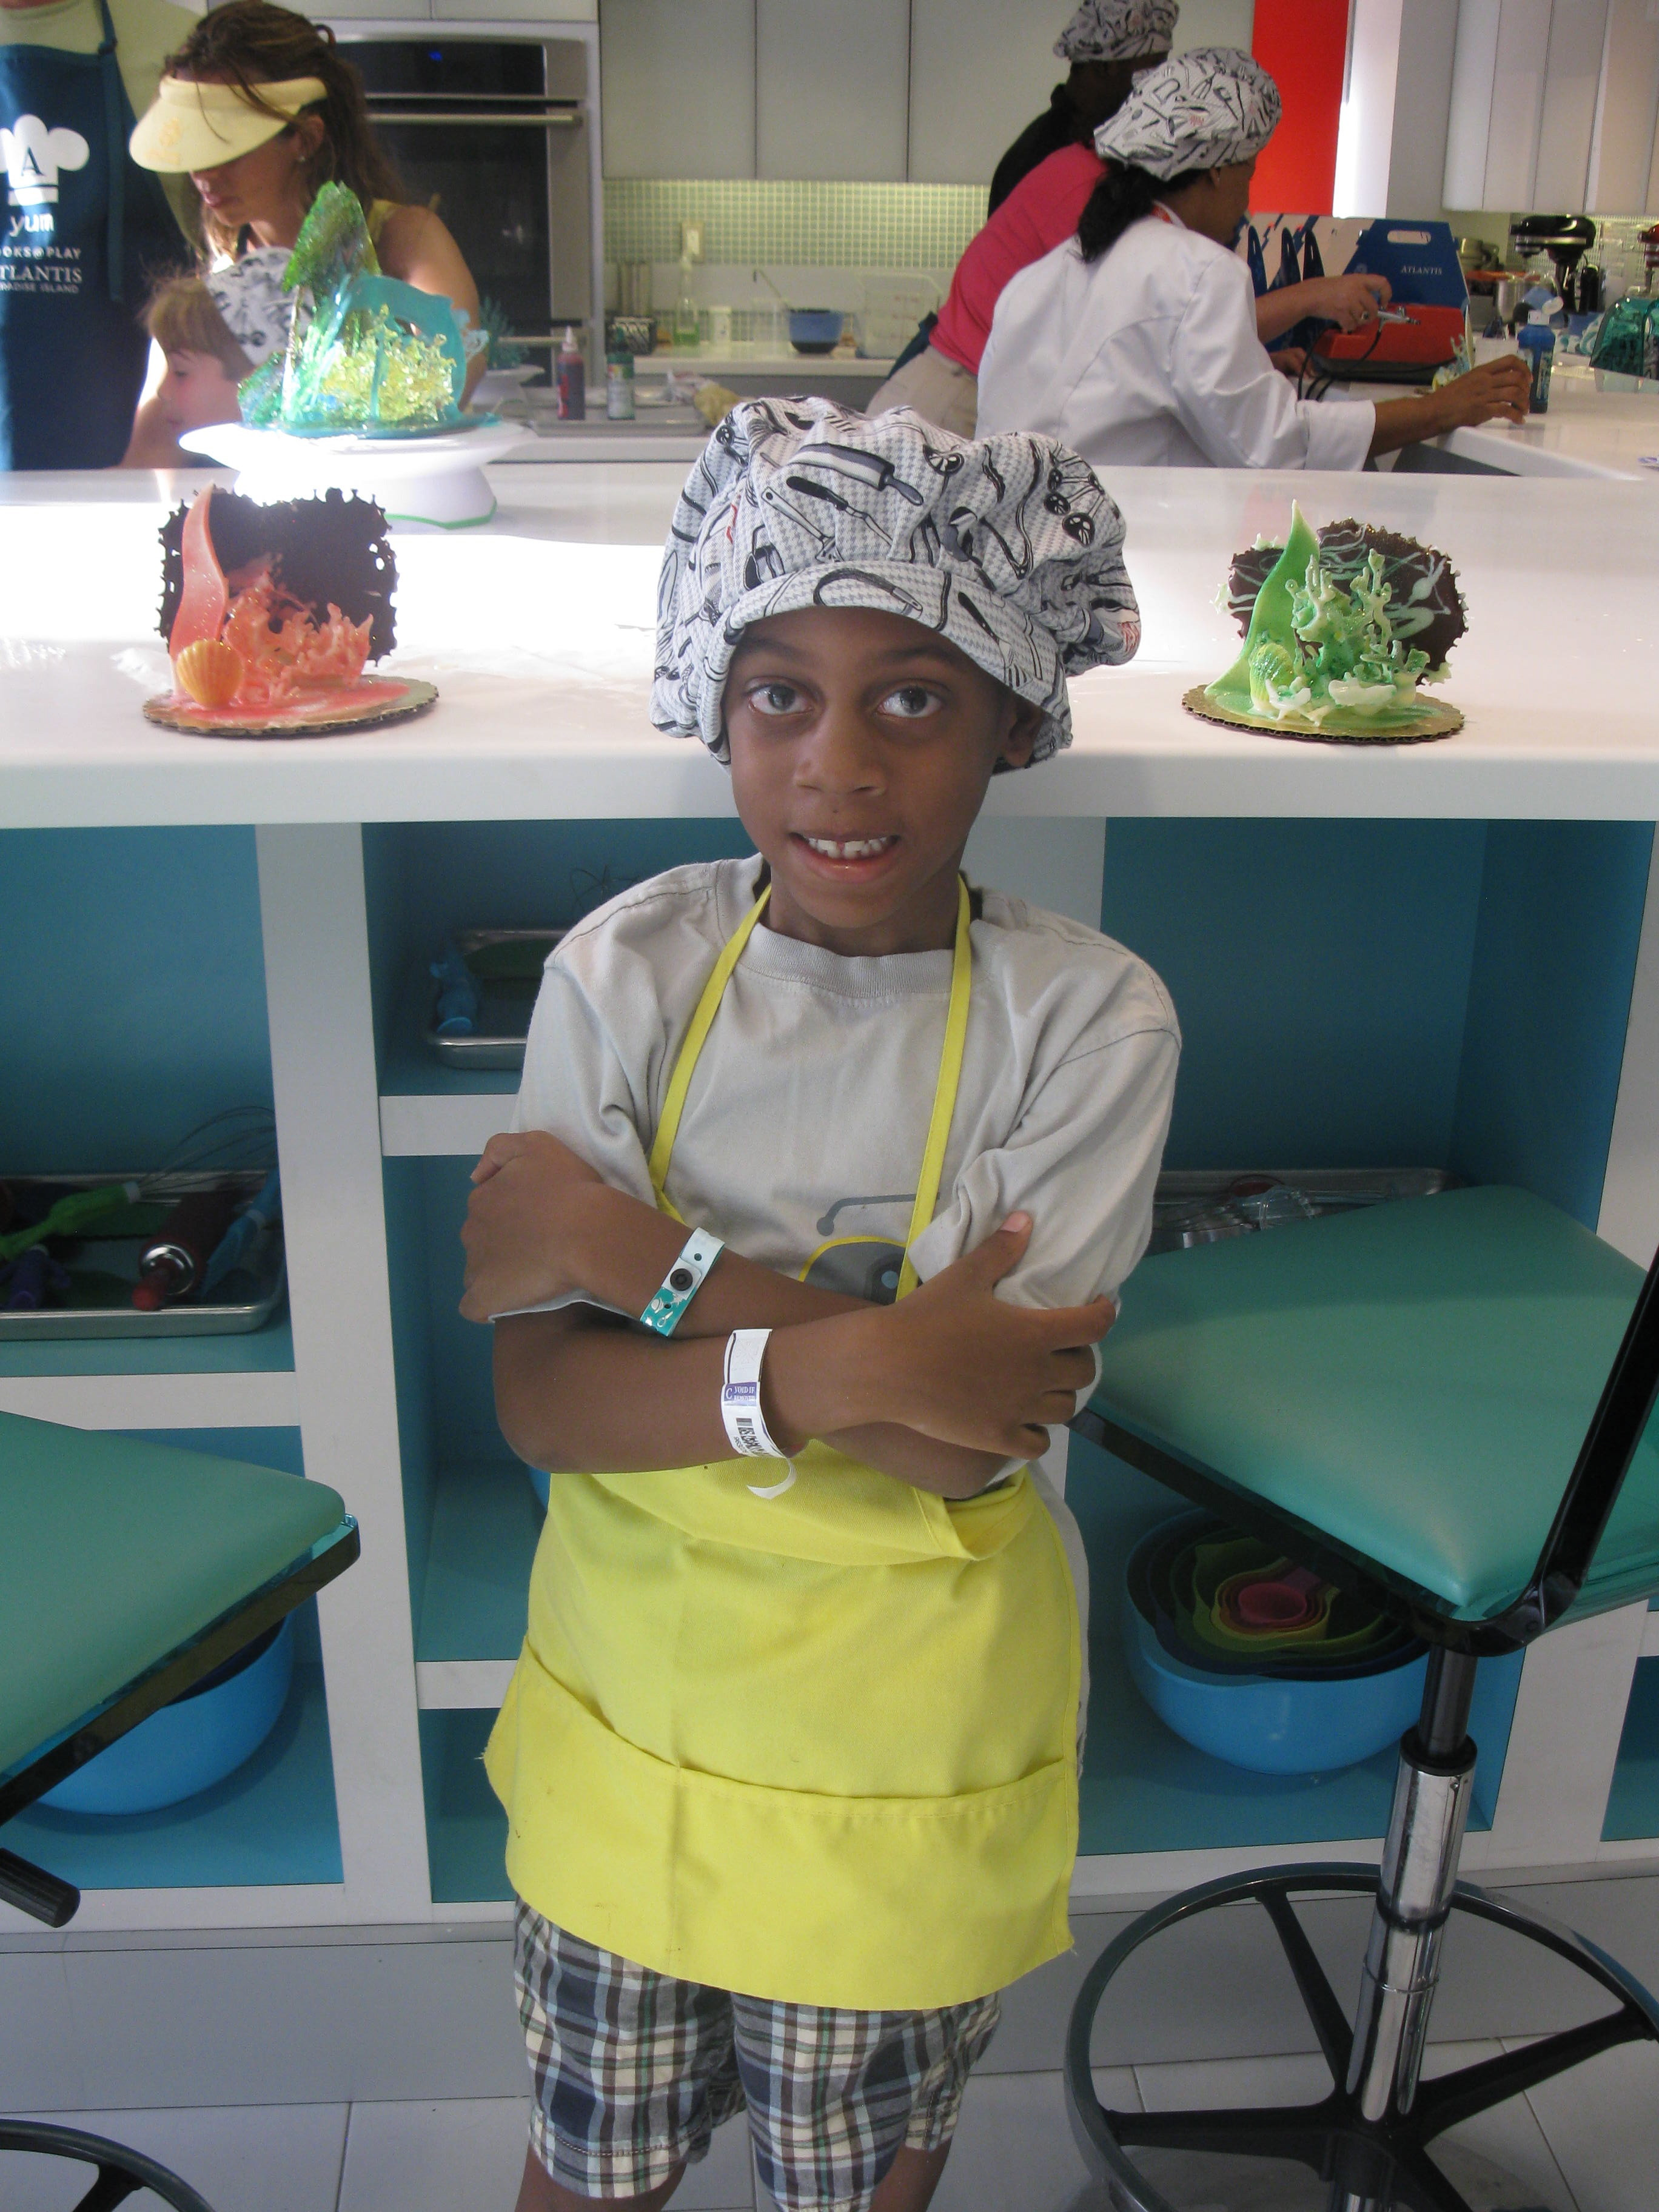 Chef for the day at Atlantis